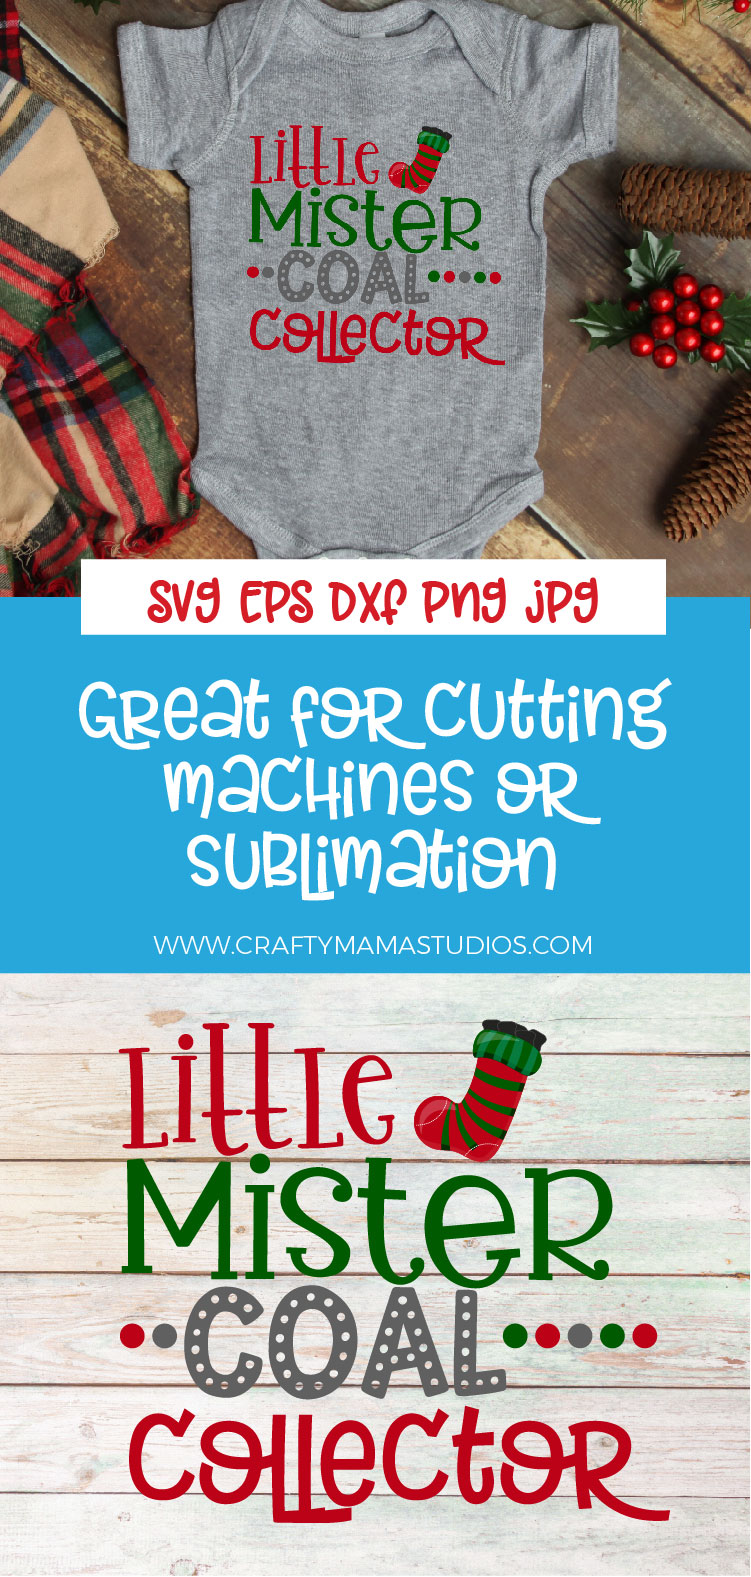 Little Mister Coal Collector, Naughty List SVG, Christmas example image 3